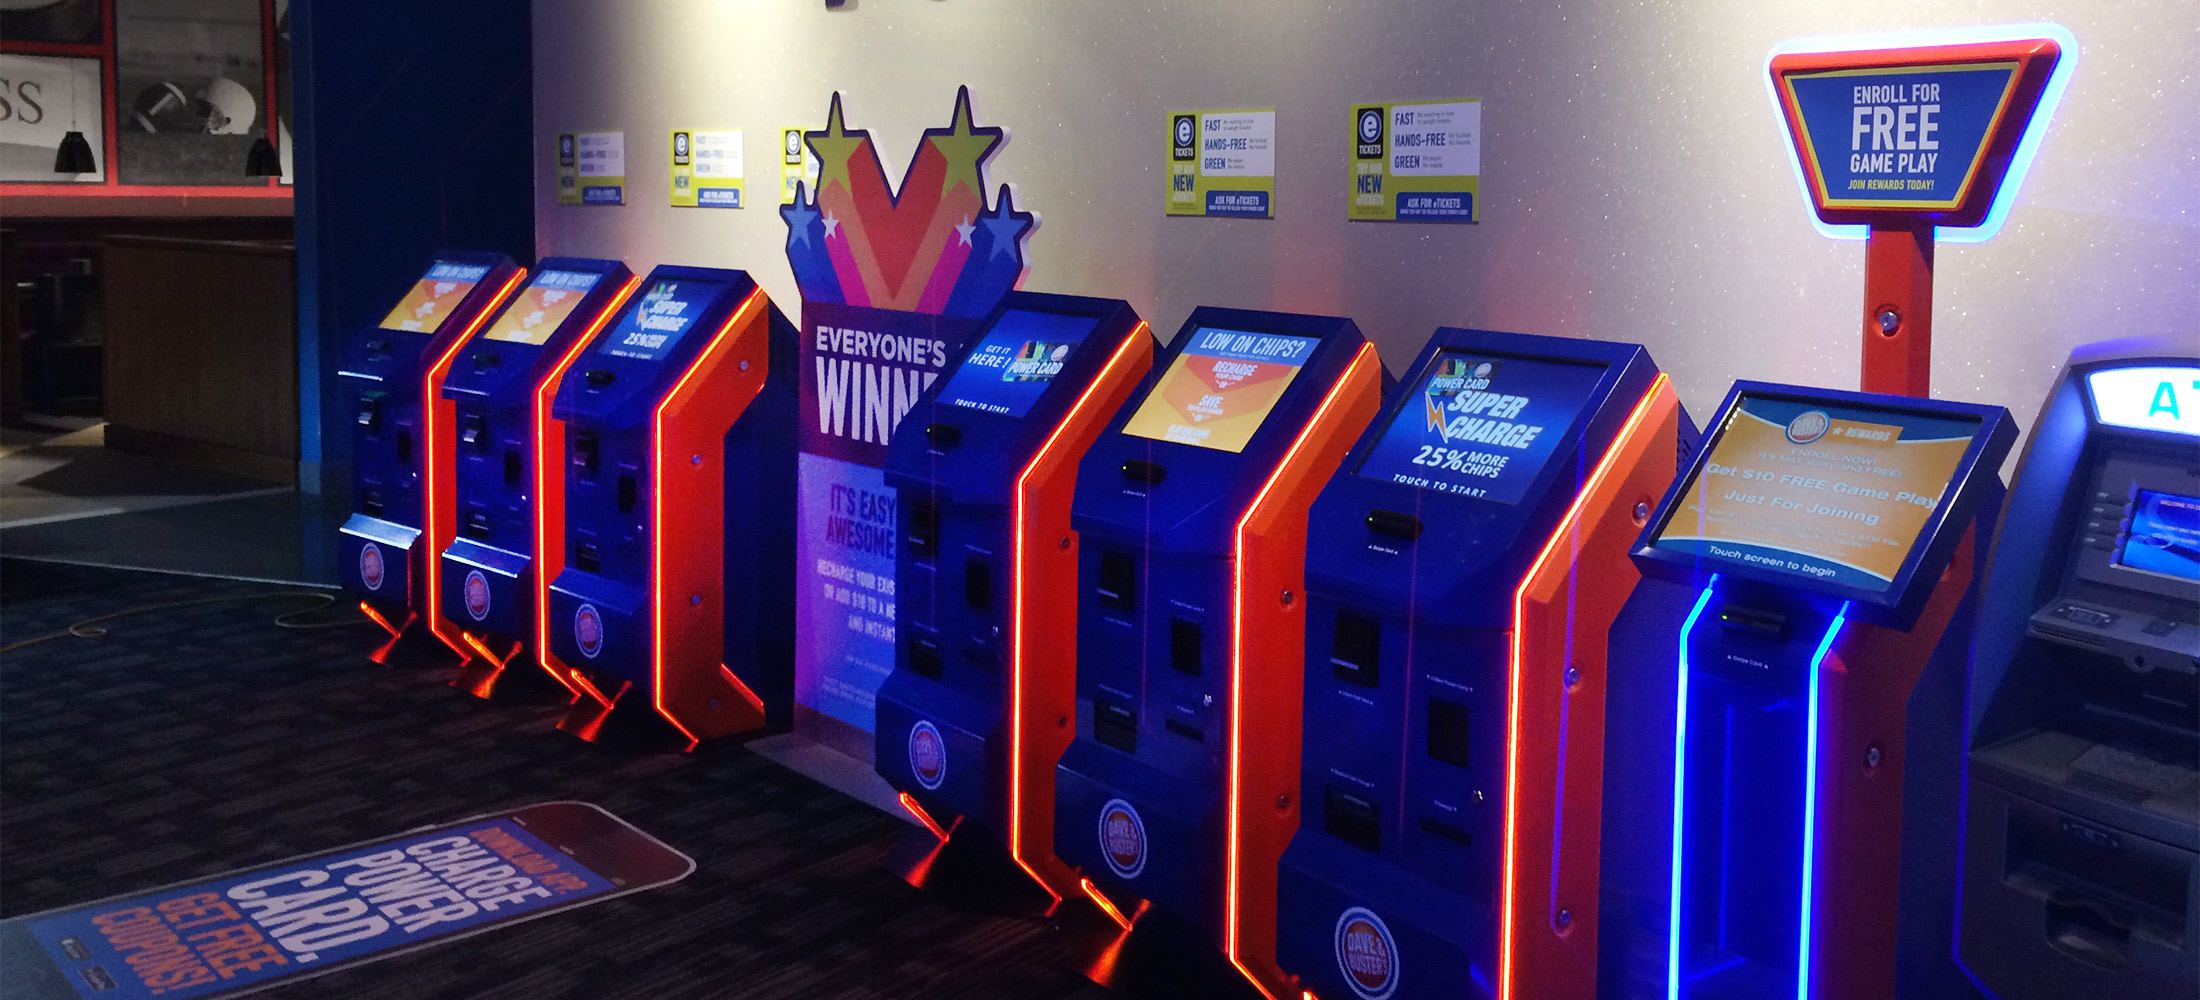 792c4dae16 Dave   Buster s loyalty kiosks rewards points directly to gamers  cards.